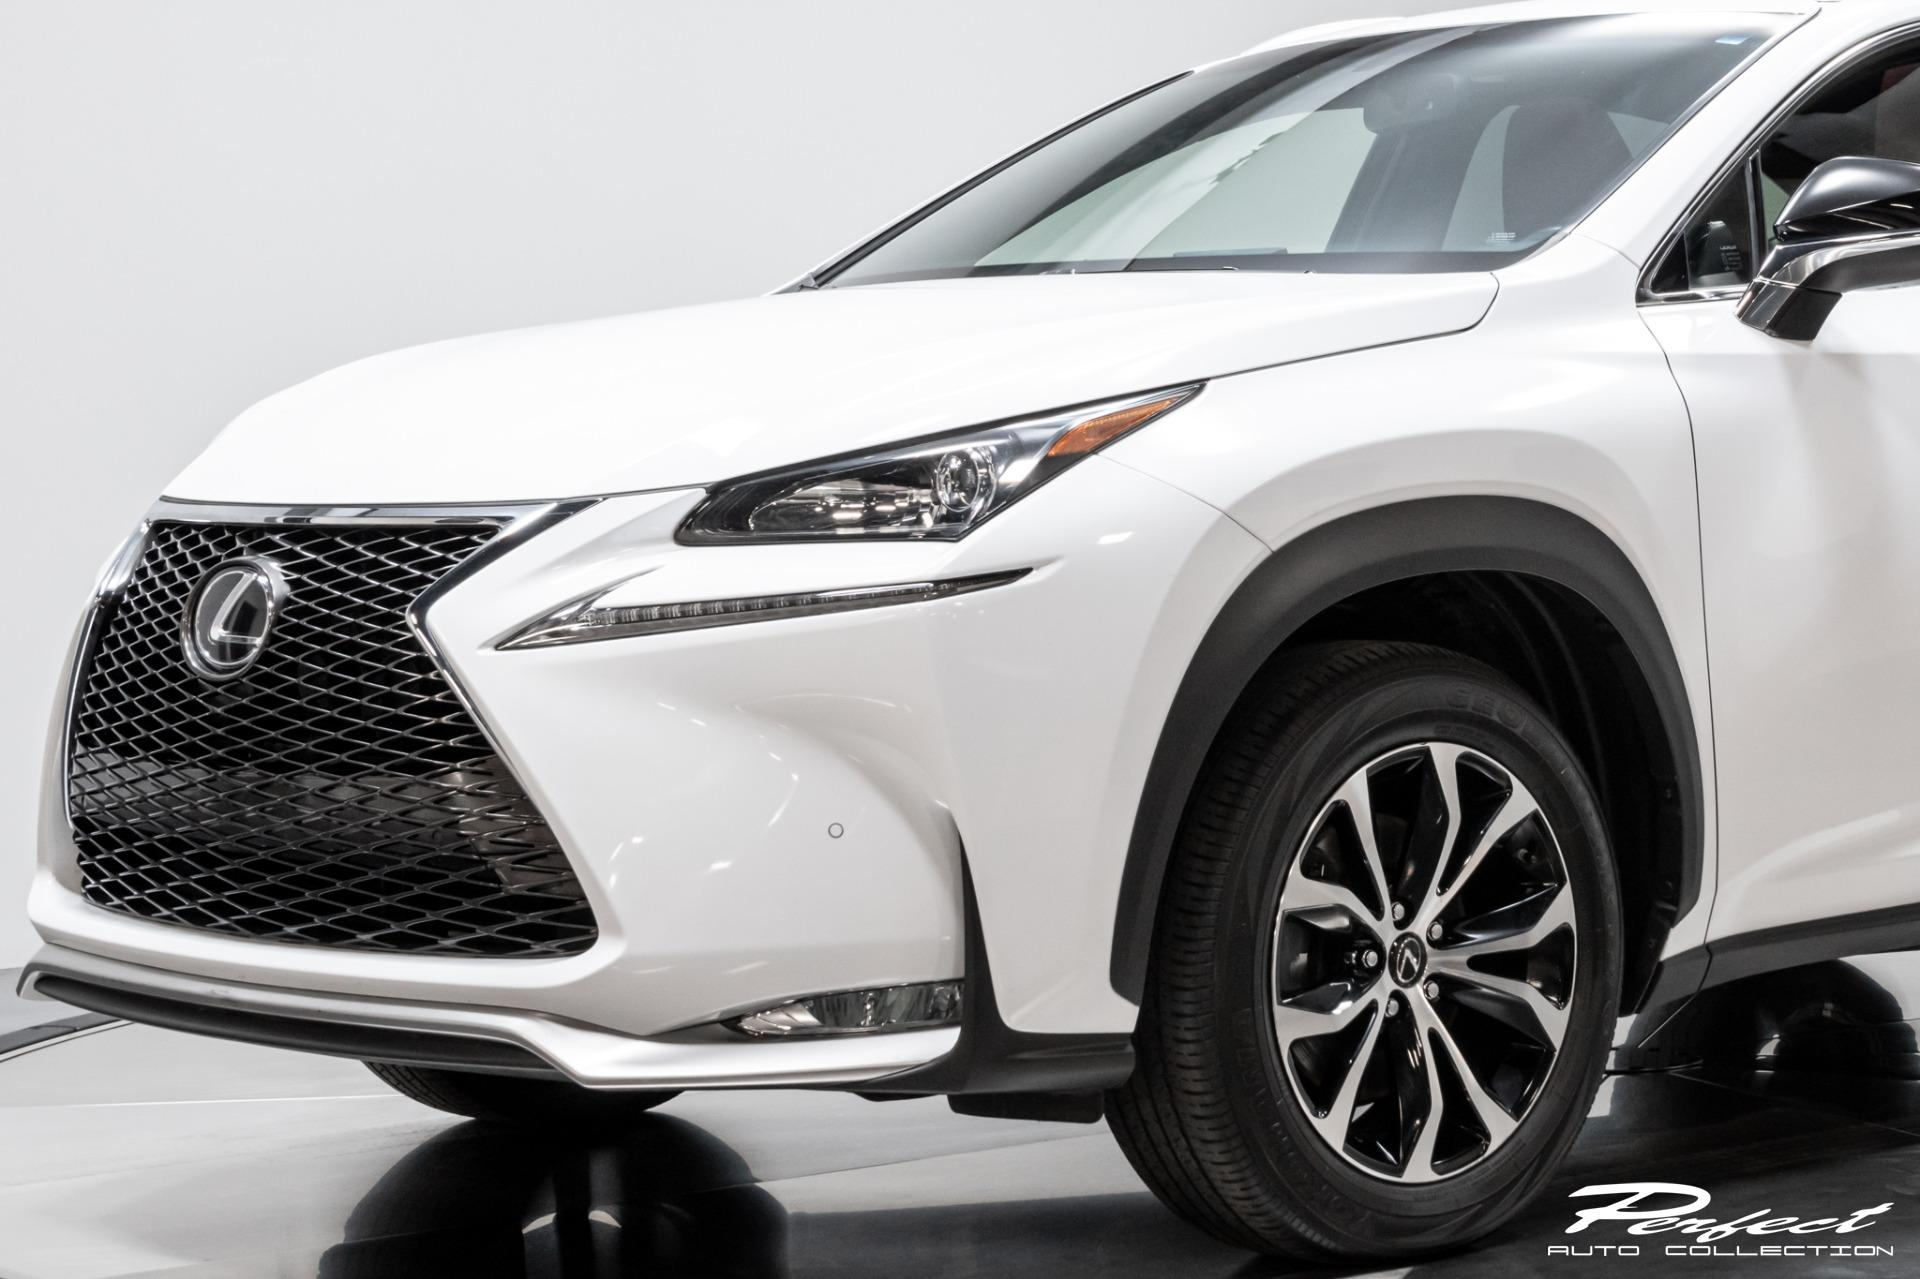 Used 2016 Lexus NX 200t F SPORT for sale $29,893 at Perfect Auto Collection in Akron OH 44310 3